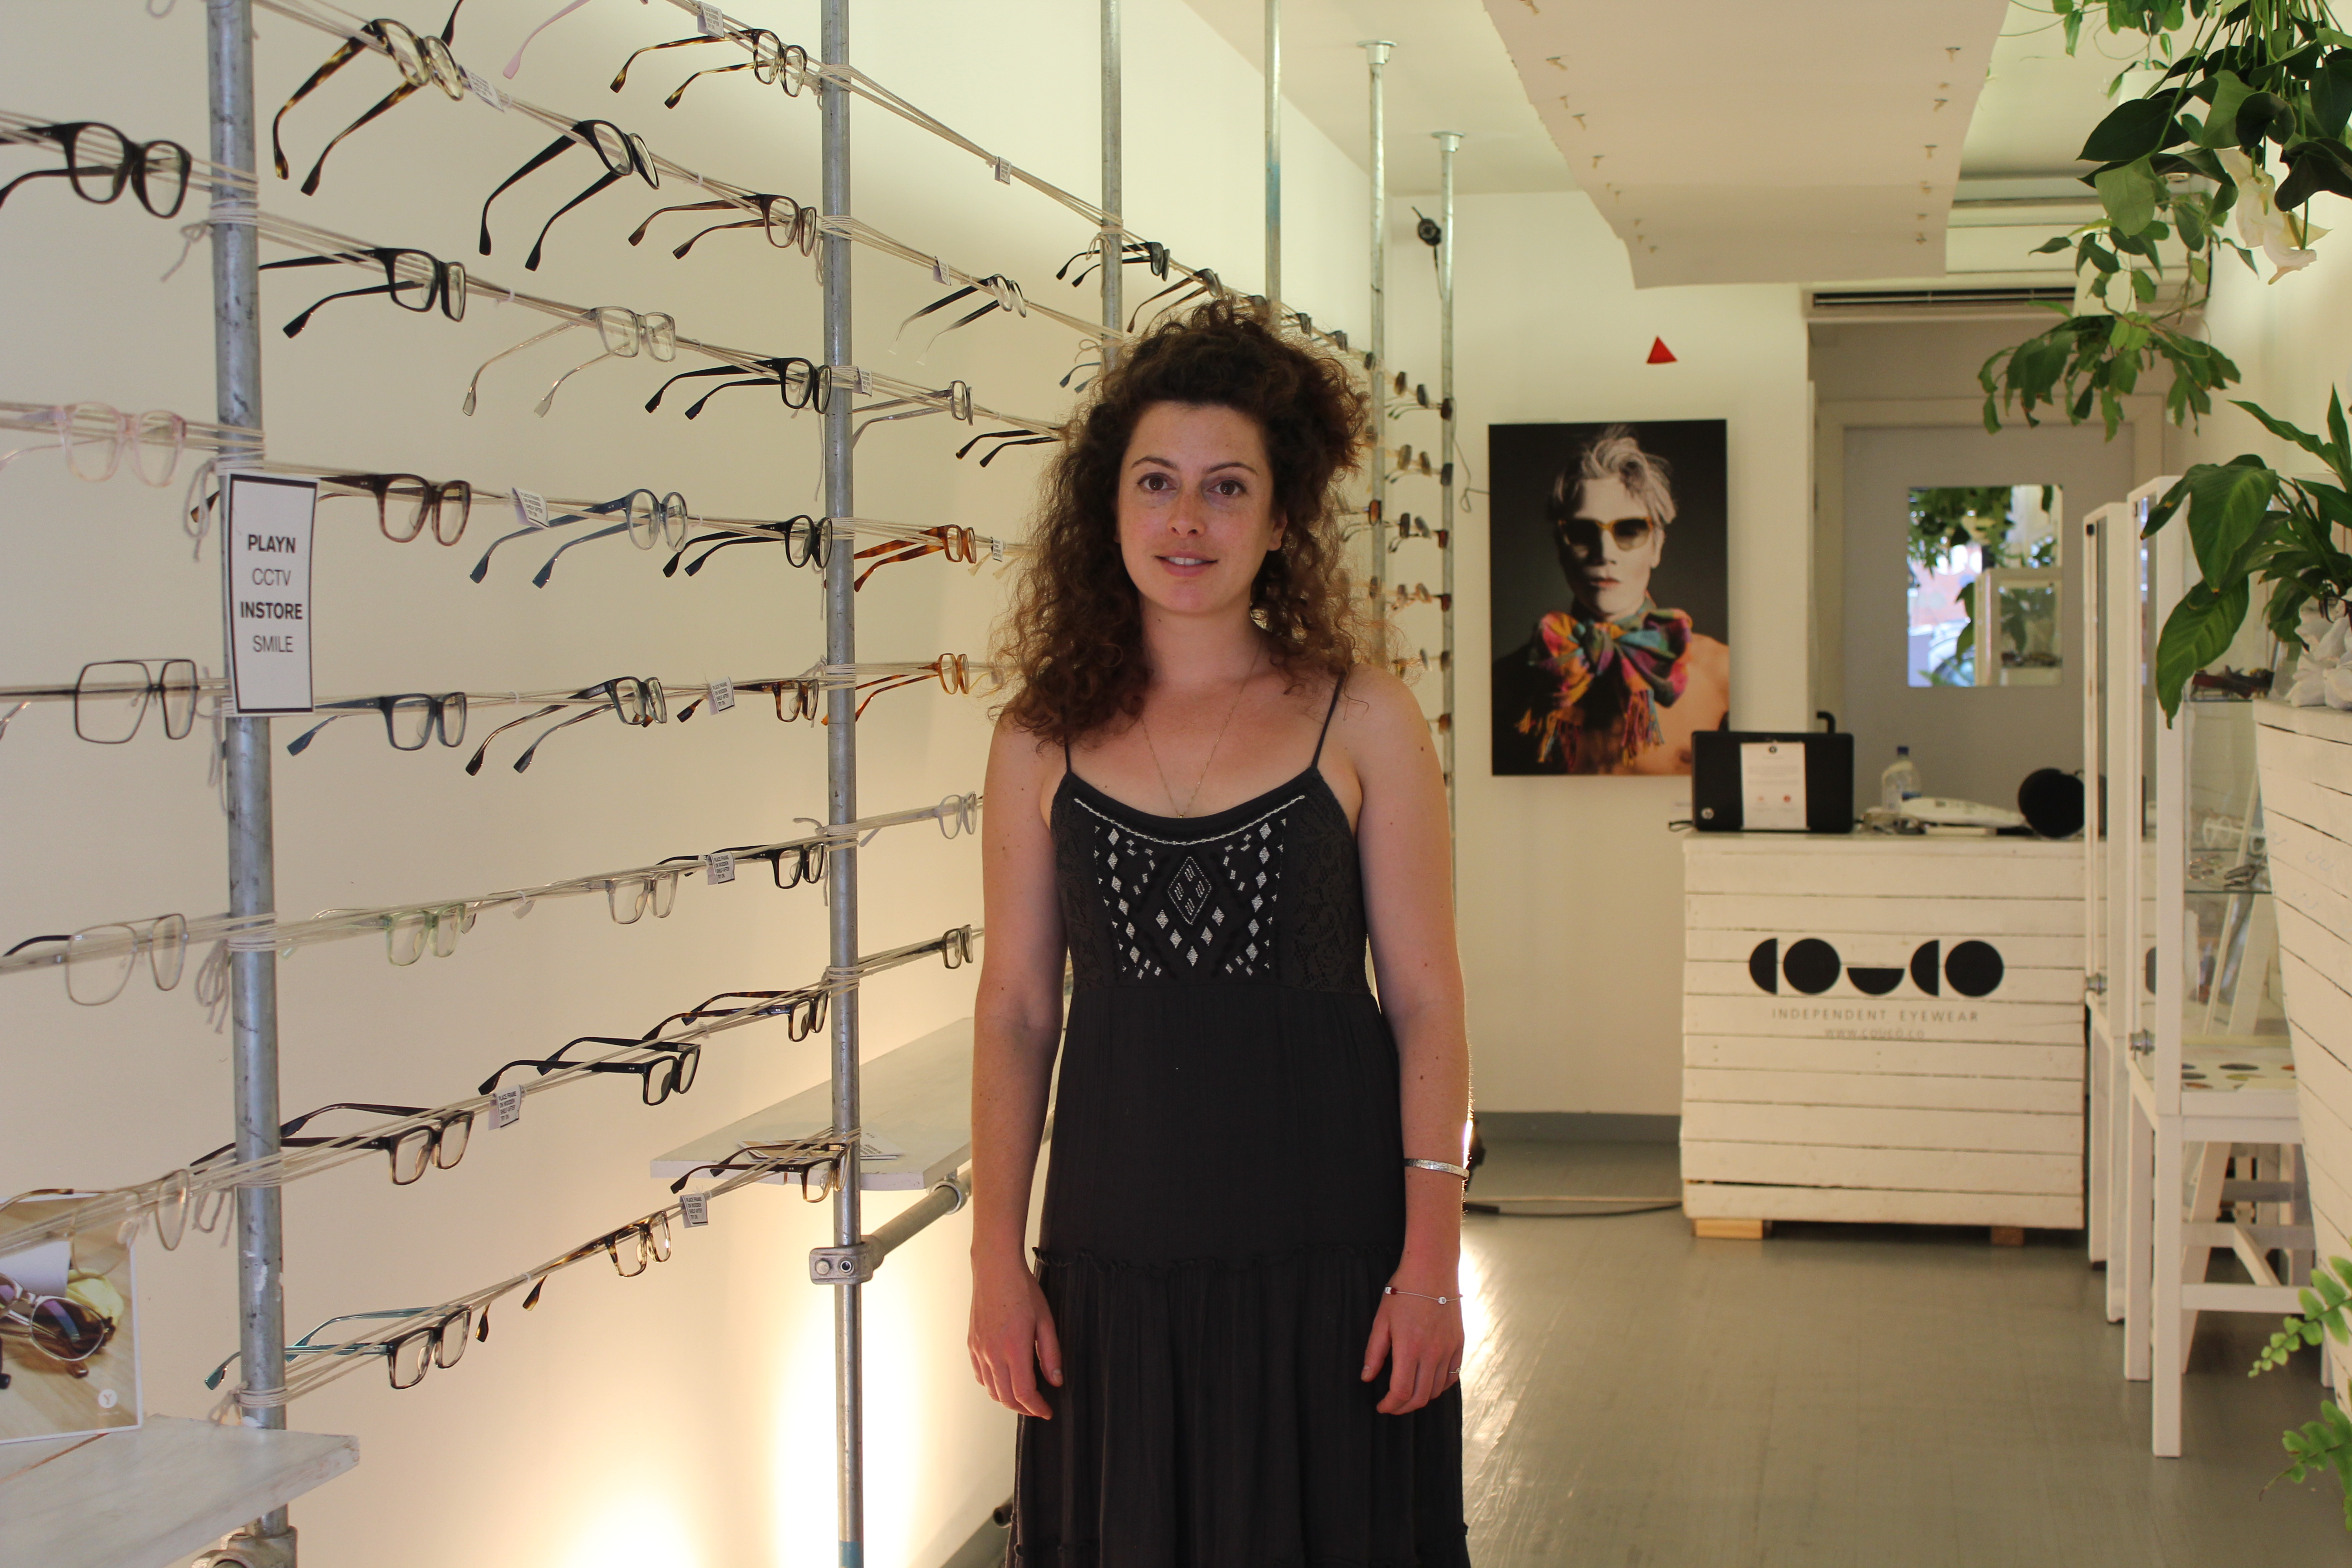 Tess Alshibaya, one of the entrepreneurs behind this independent eyewear business, stands with her store CouCo. Photo by Carley Lerner